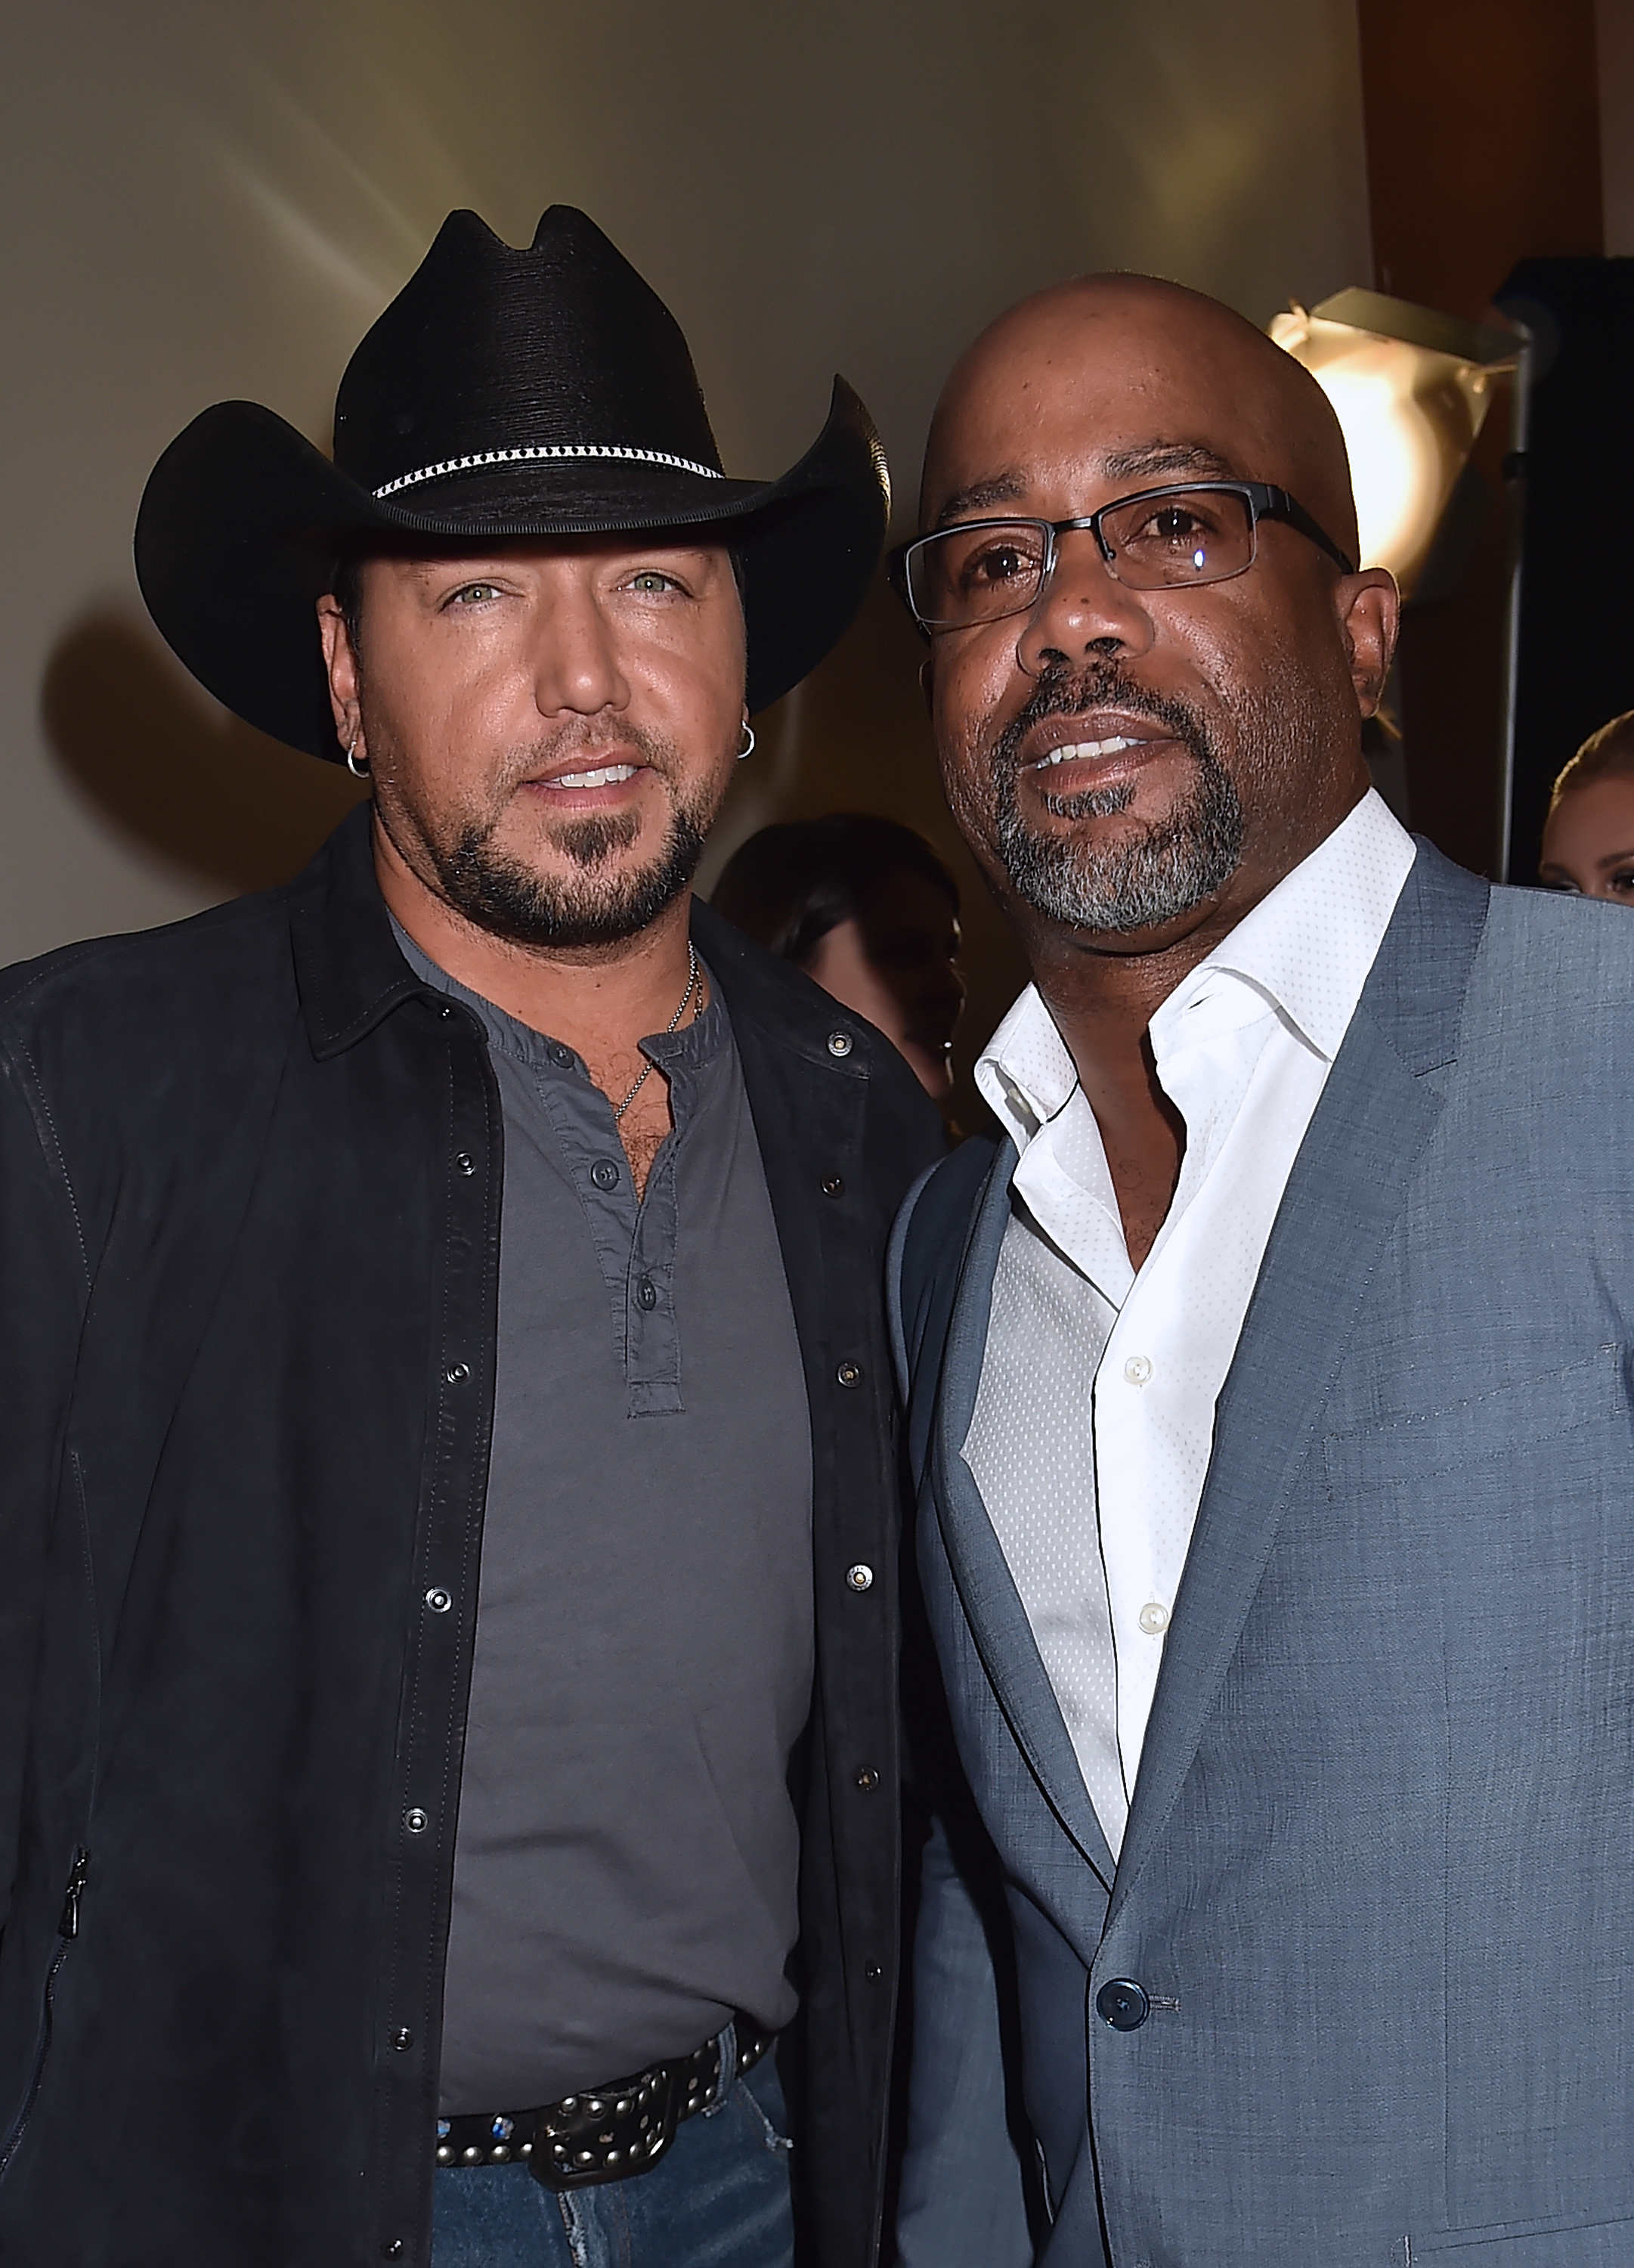 Jason Aldean and Darius Rucker attend the 2017 CMT Music Awards at the Music City Center  in Nashville, Tennessee, on June 7, 2017.